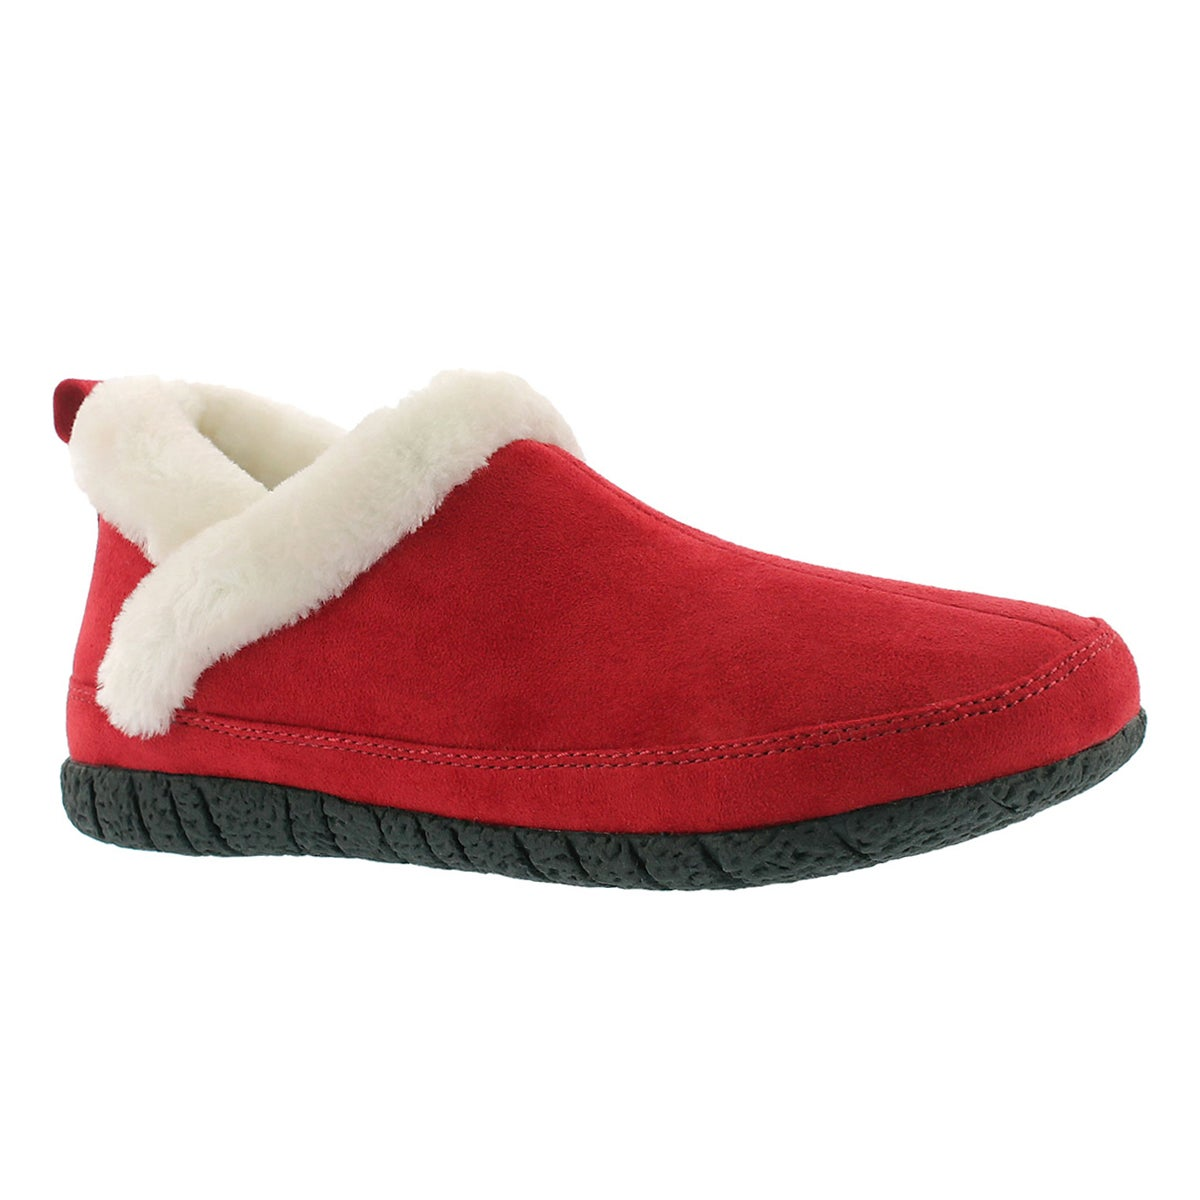 Lds Ruby 2 burgundy closed back slipper